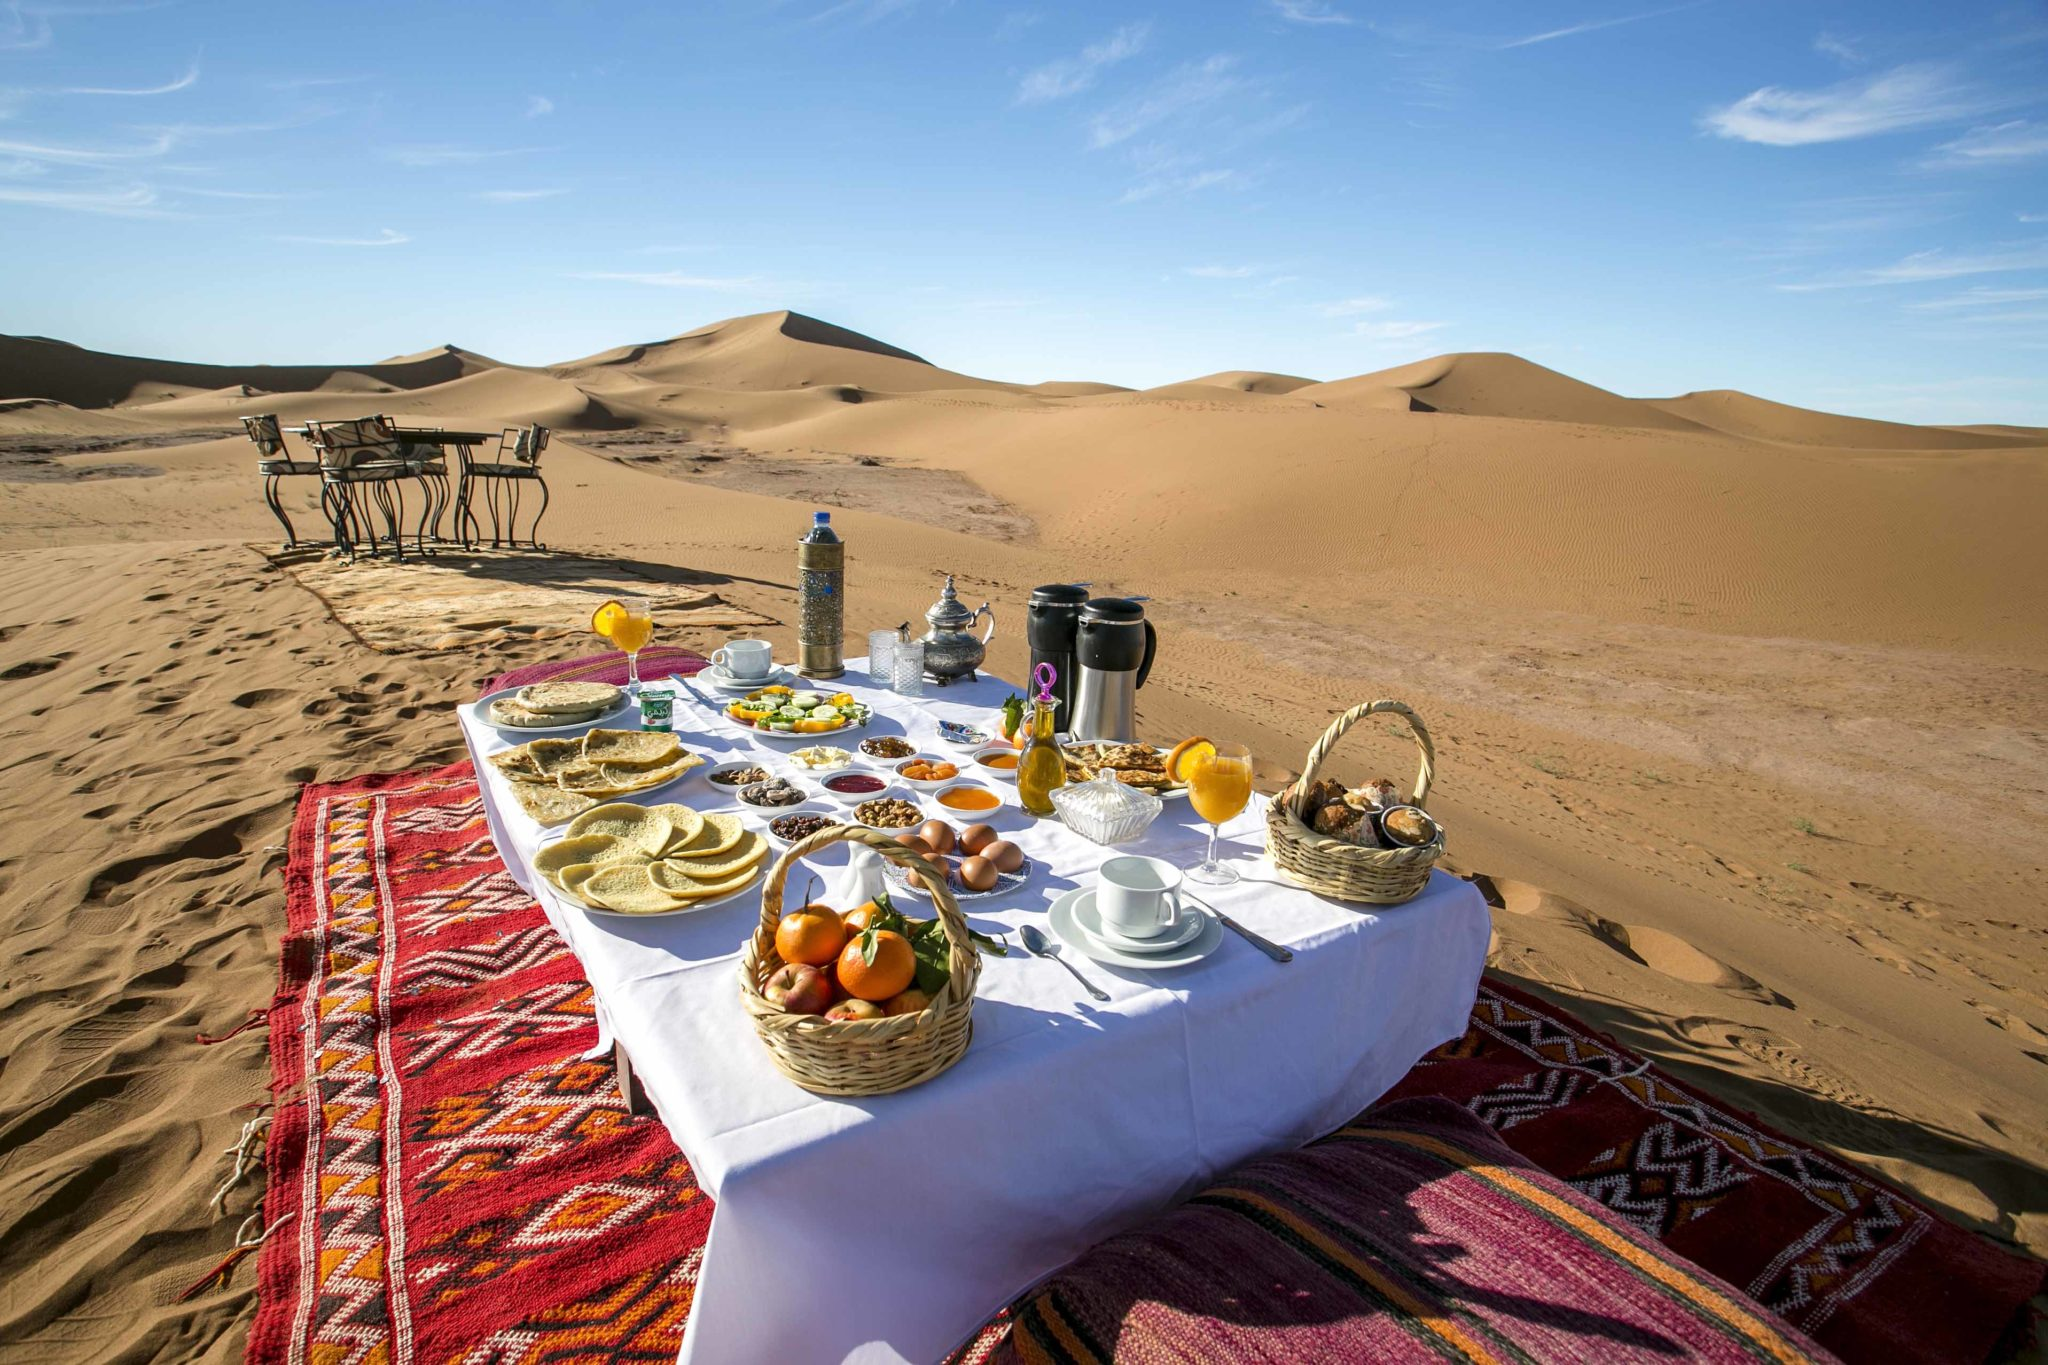 Incentives corporate business travel in Morocco for groups companies team building